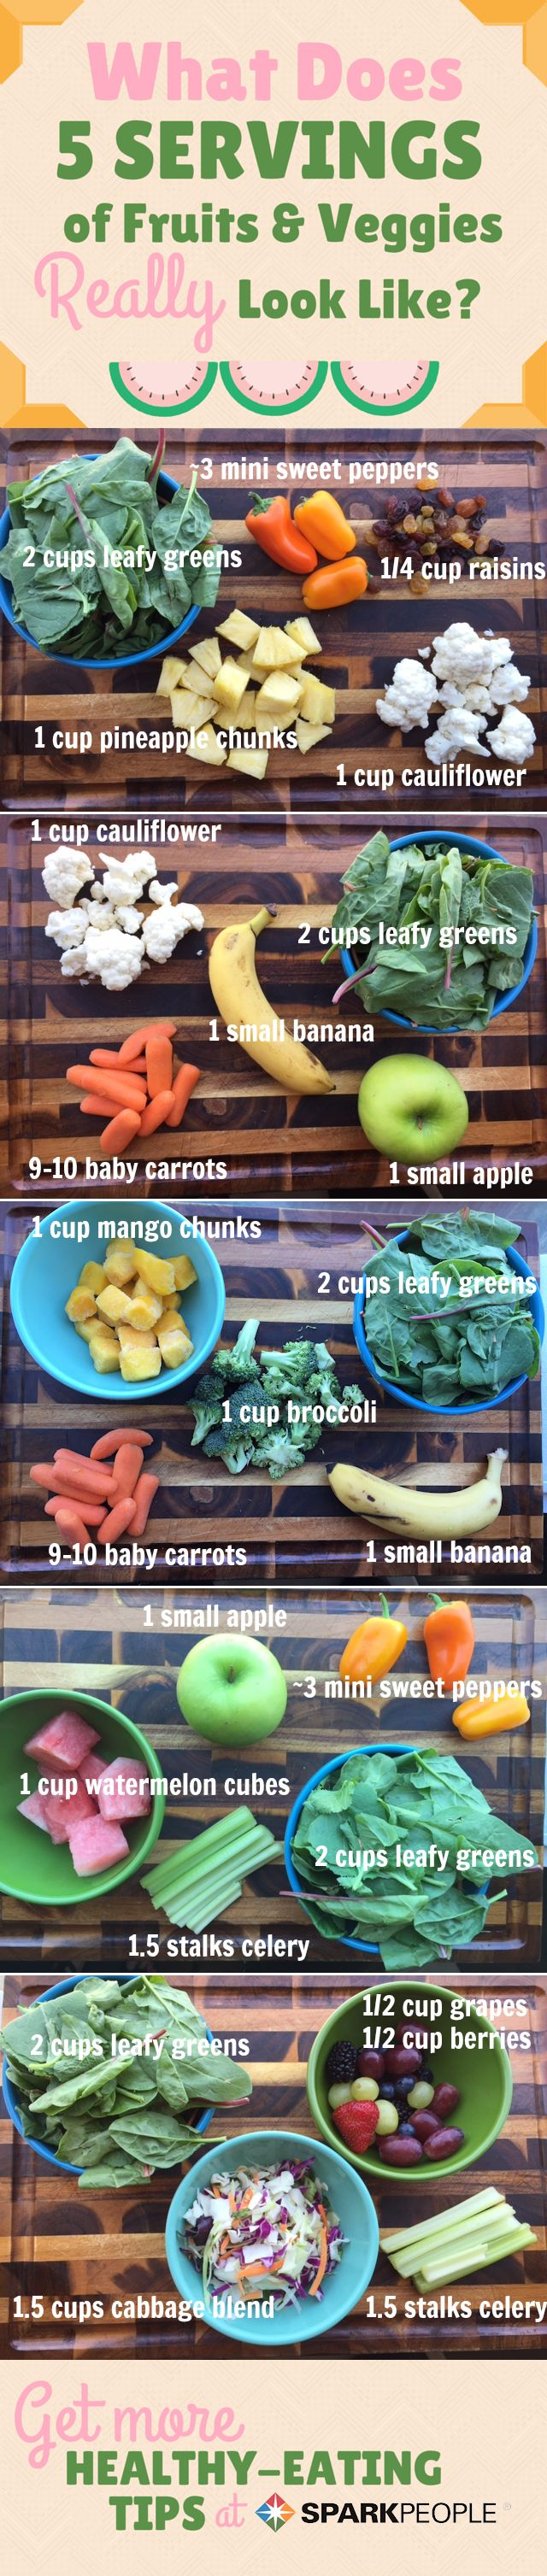 nike run free 3 0 What 5 Veggie Servings Looks Like  Wow  I  39 ve been eating more than I thought     via  SparkPeople  health  healthy  nutrition  weightloss  diet  veggies